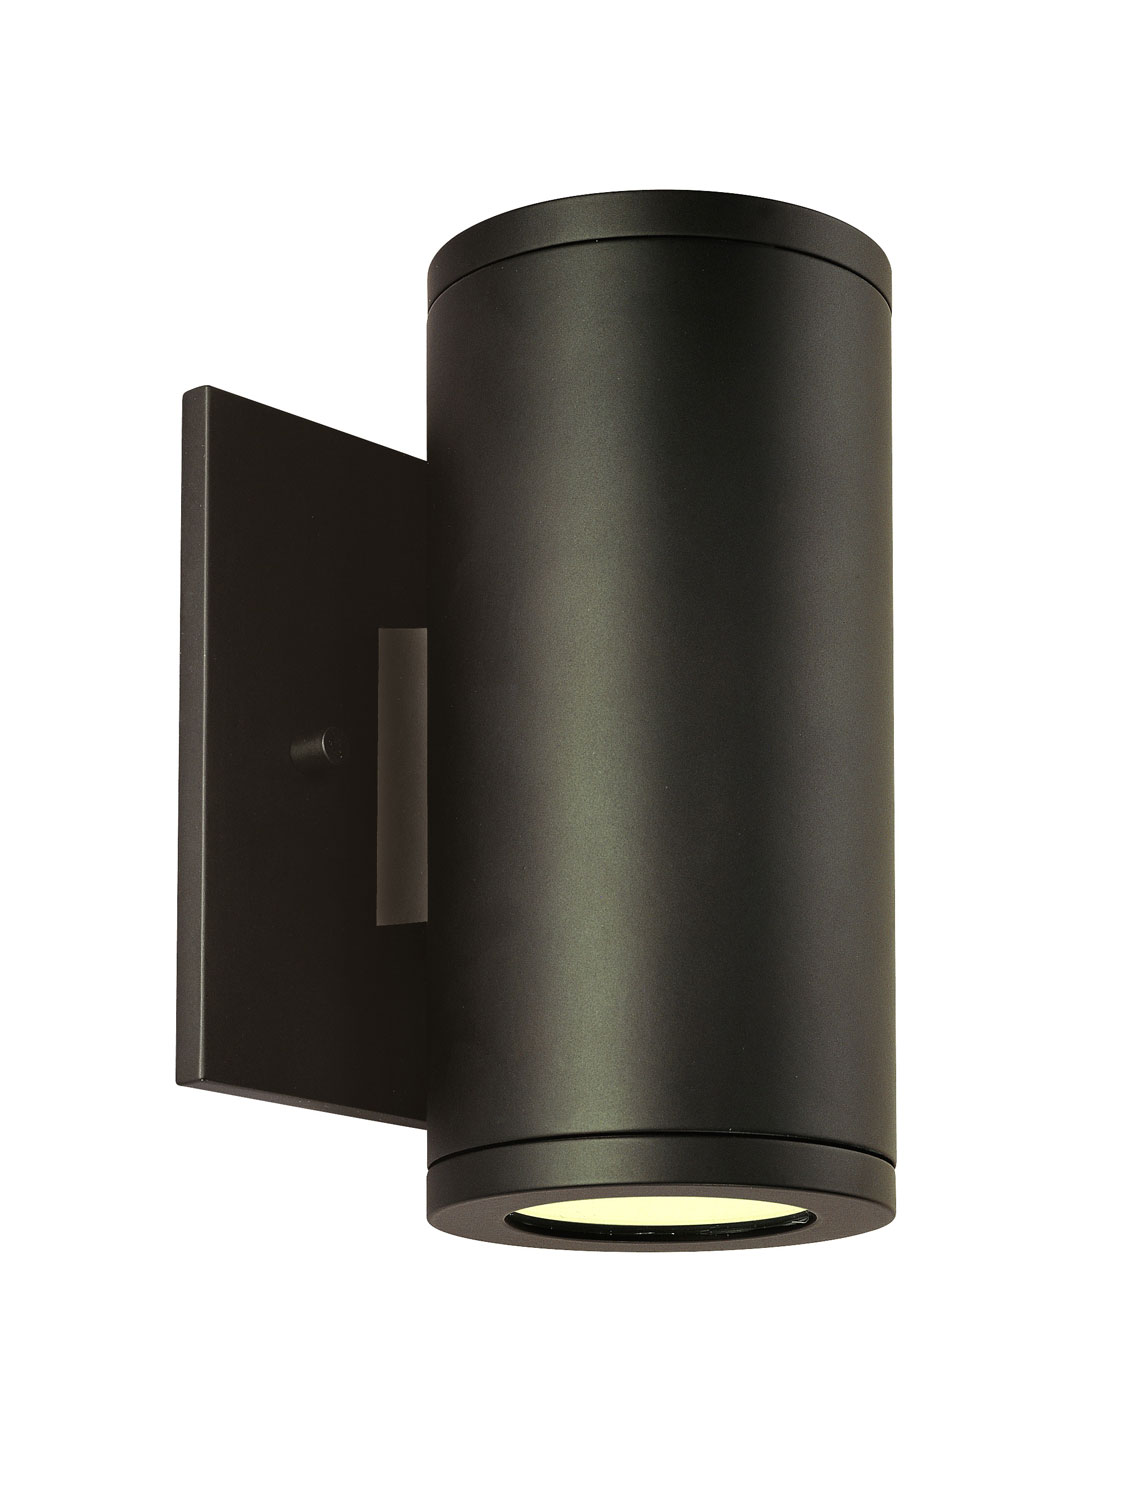 Outside Wall Mounted Lights : Wall mounted outdoor lights - For Added Security In Your Home Warisan Lighting